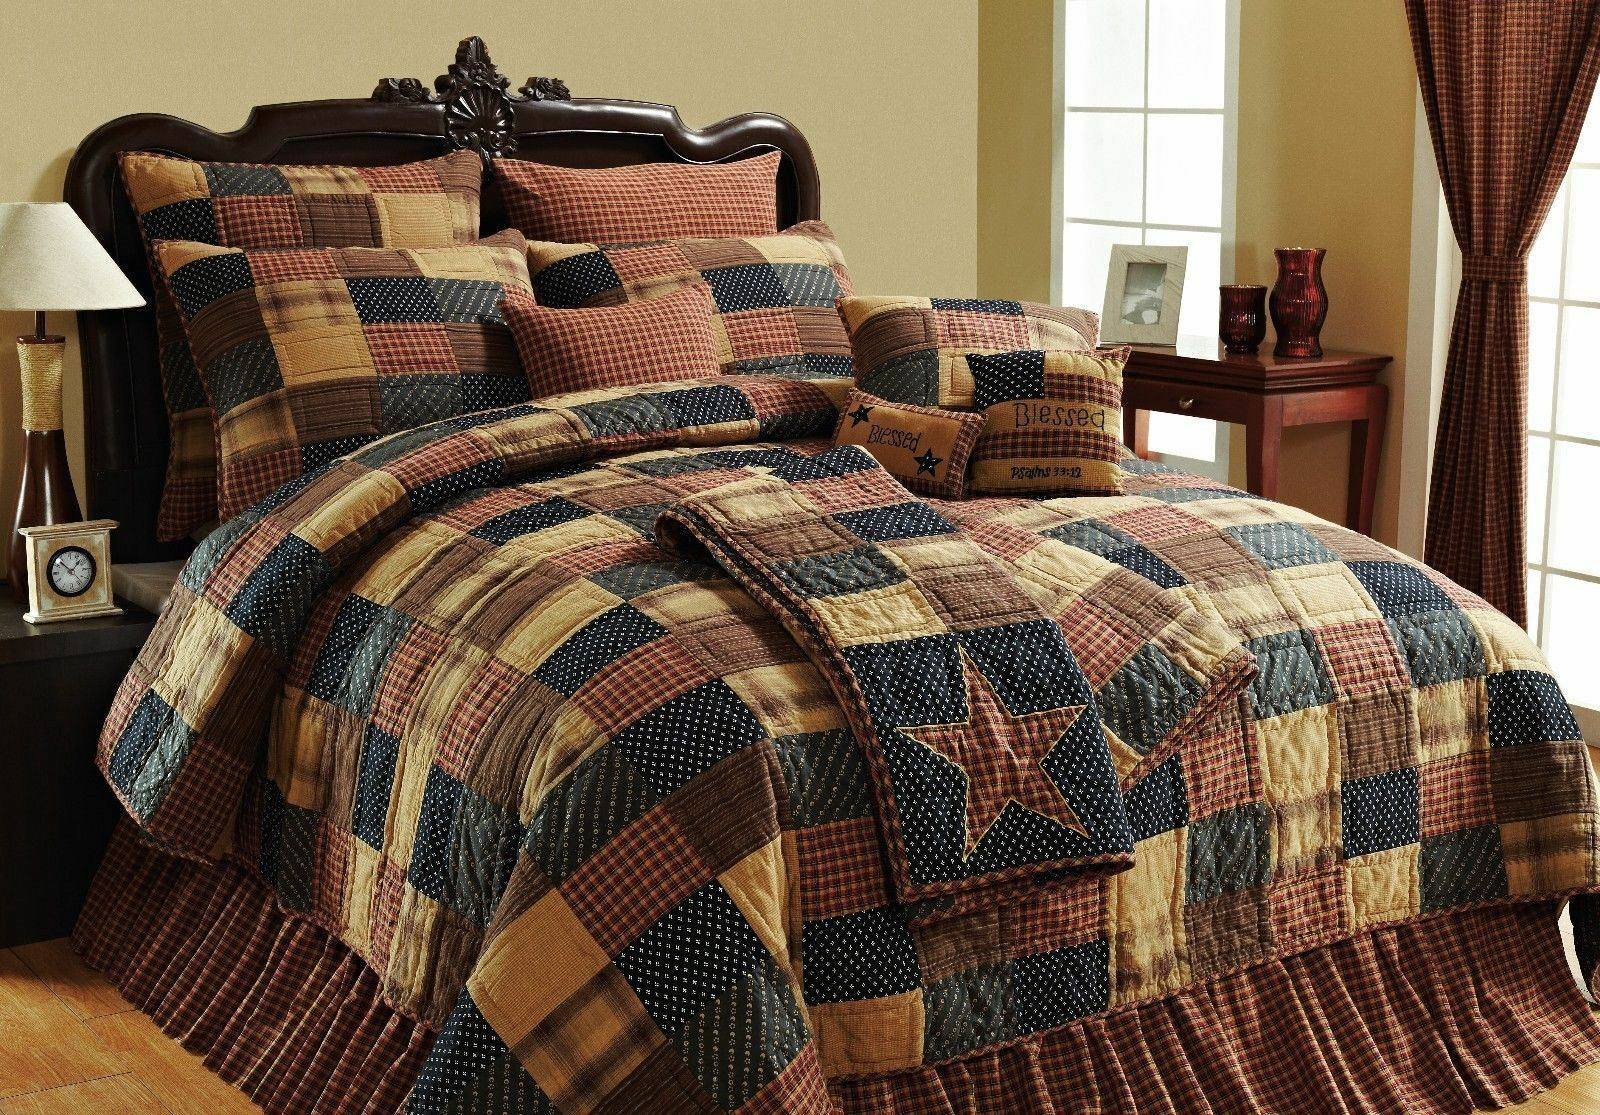 Hand Stitched Country Farmhouse Patchwork Quilt rosso blu Tan Patriotic Patch